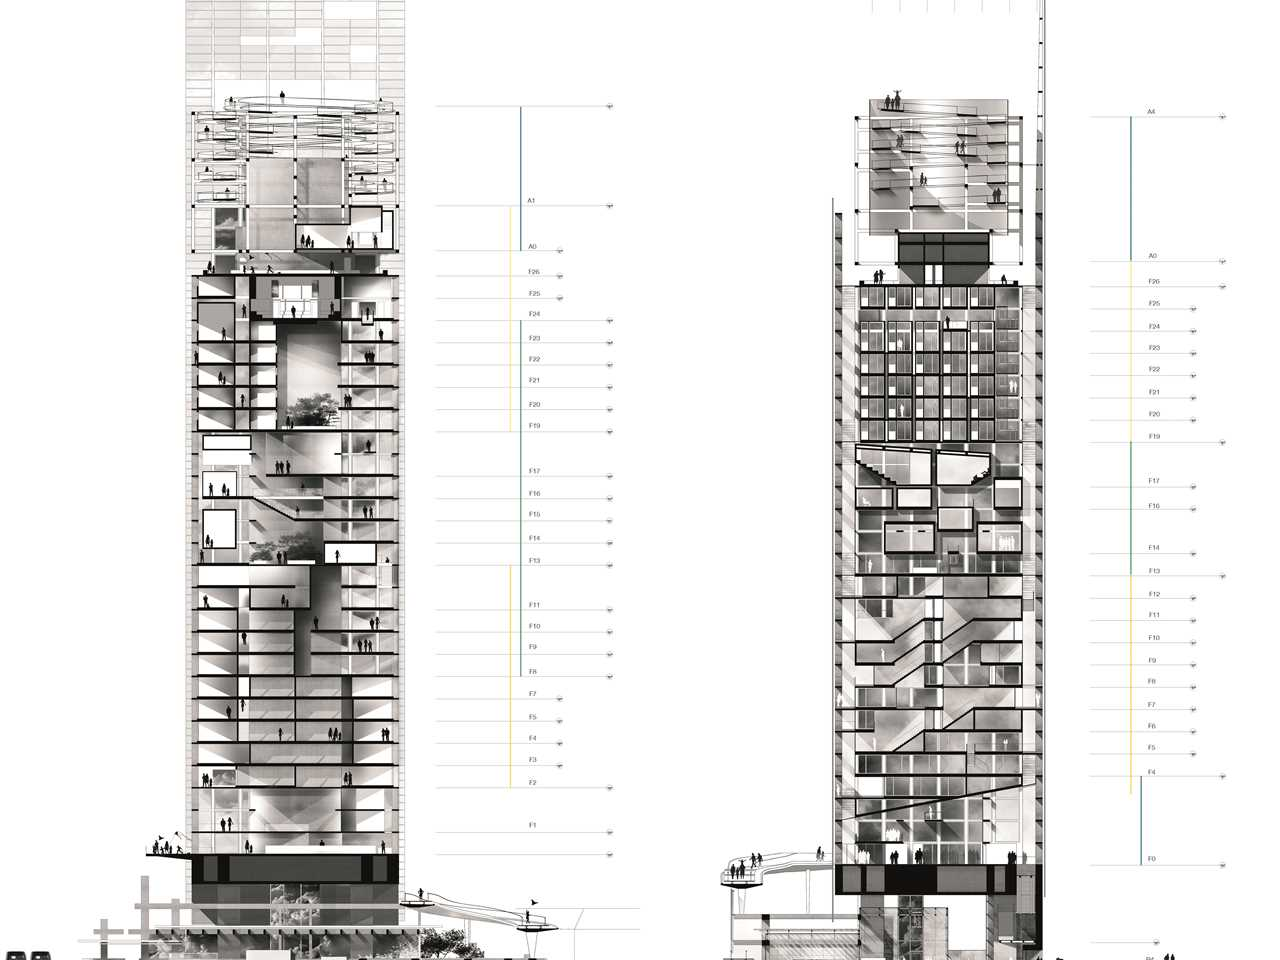 Holcim Awards Next Generation 5th 2014 Europe – Vertical Restructuring: High-rise tower …